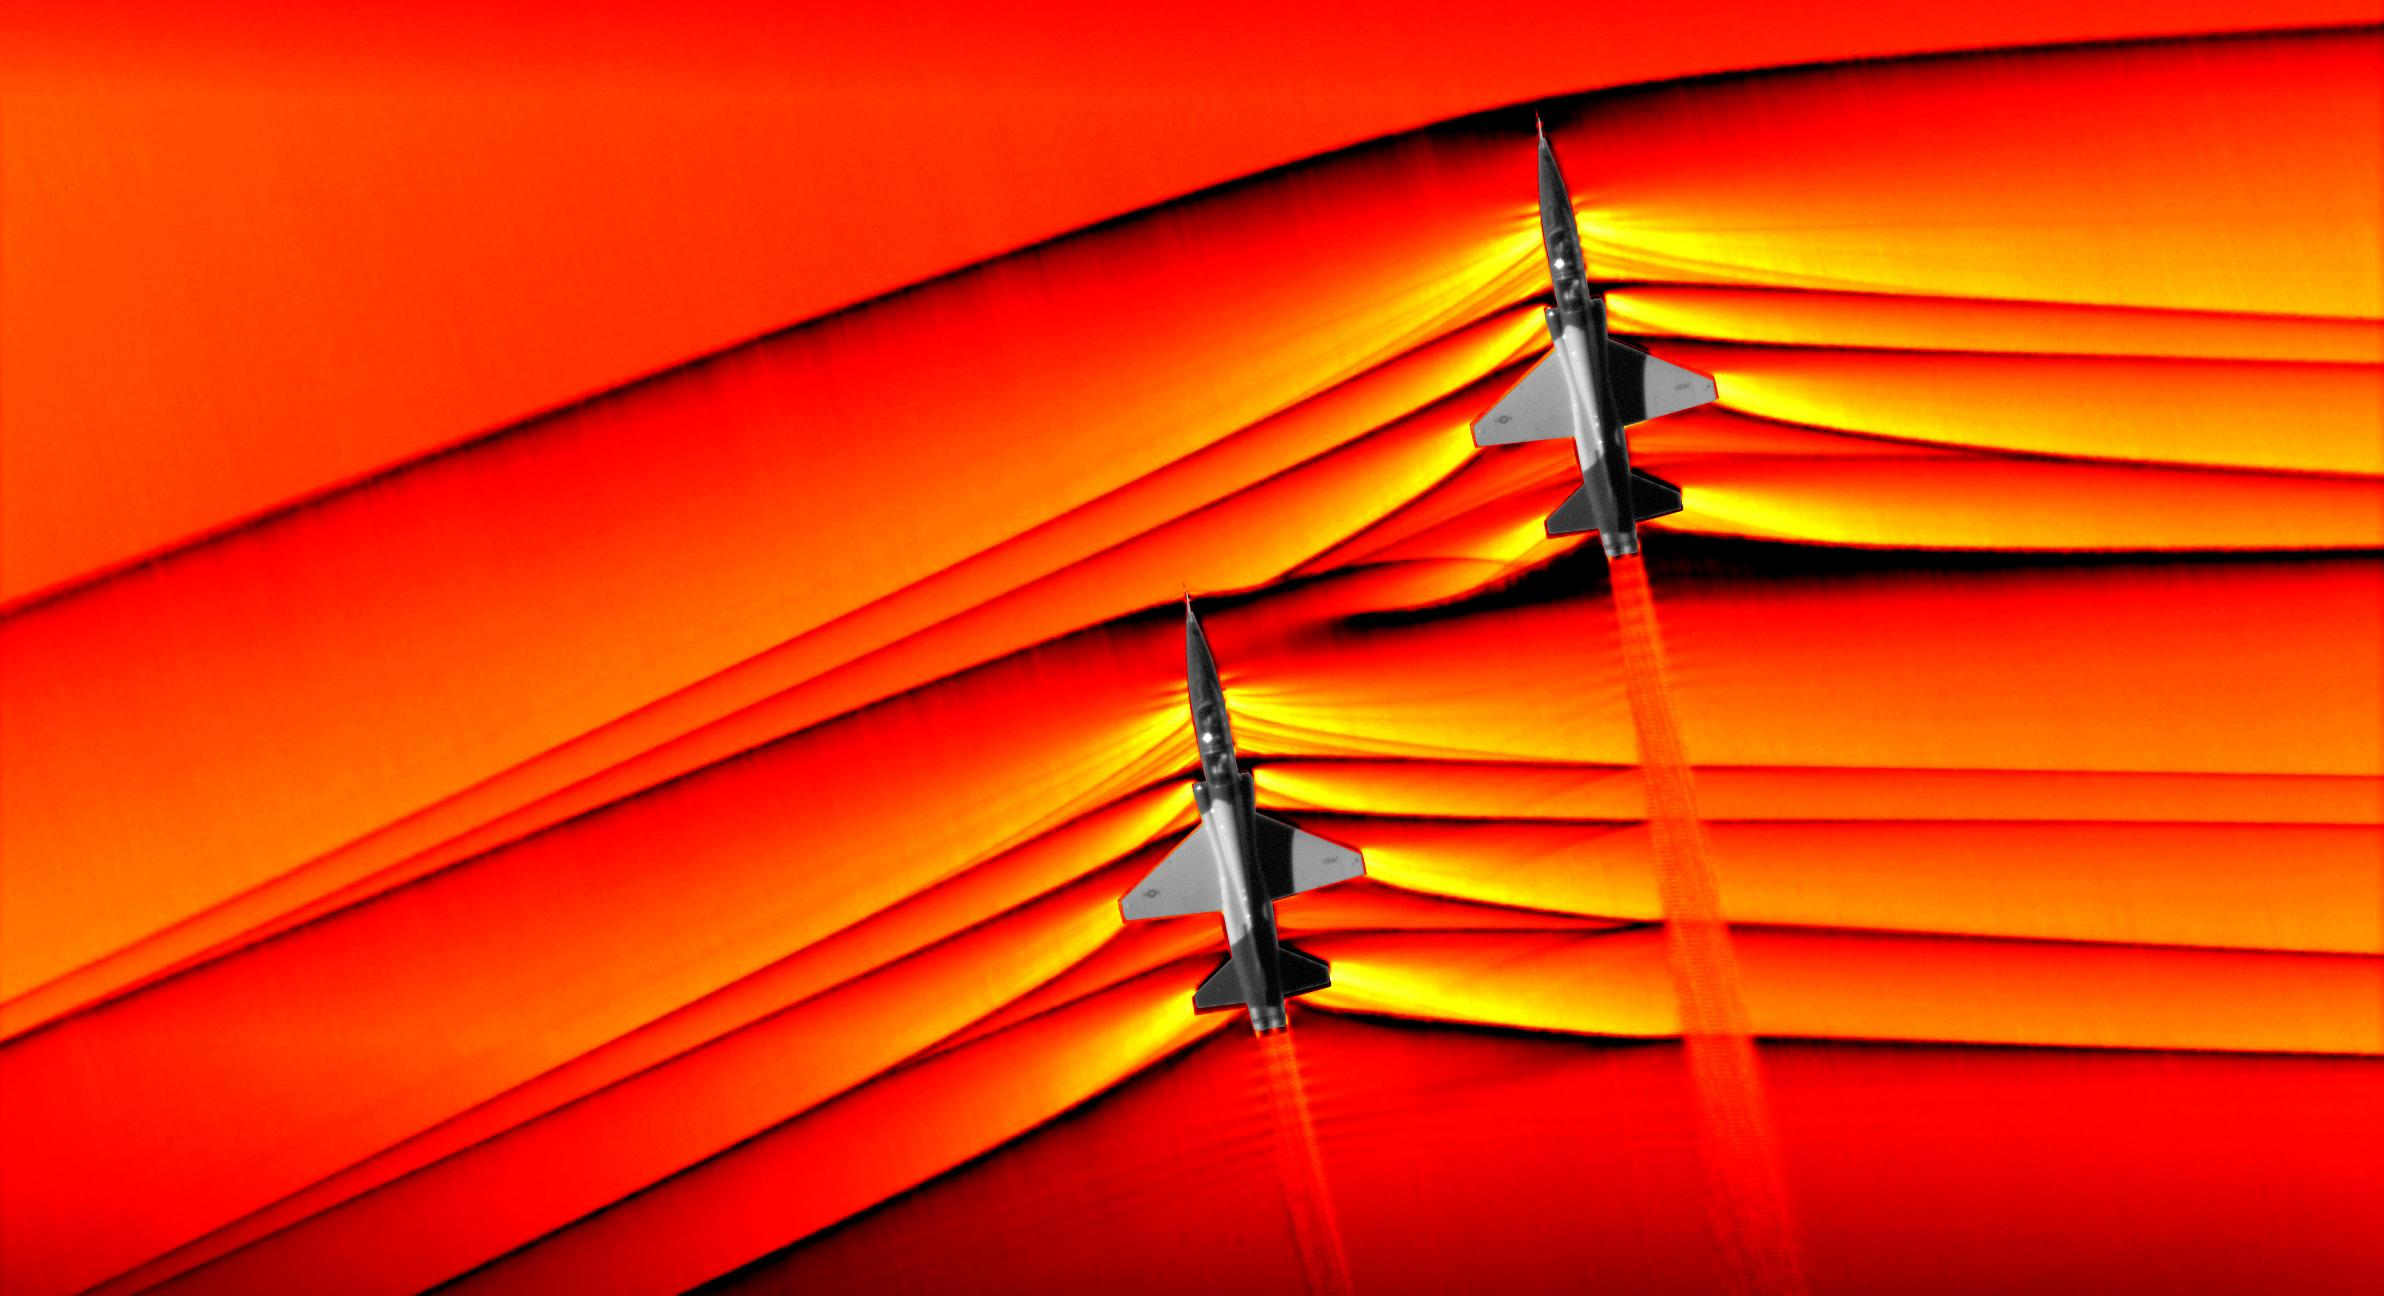 NASA captures unprecedented images of supersonic shock waves